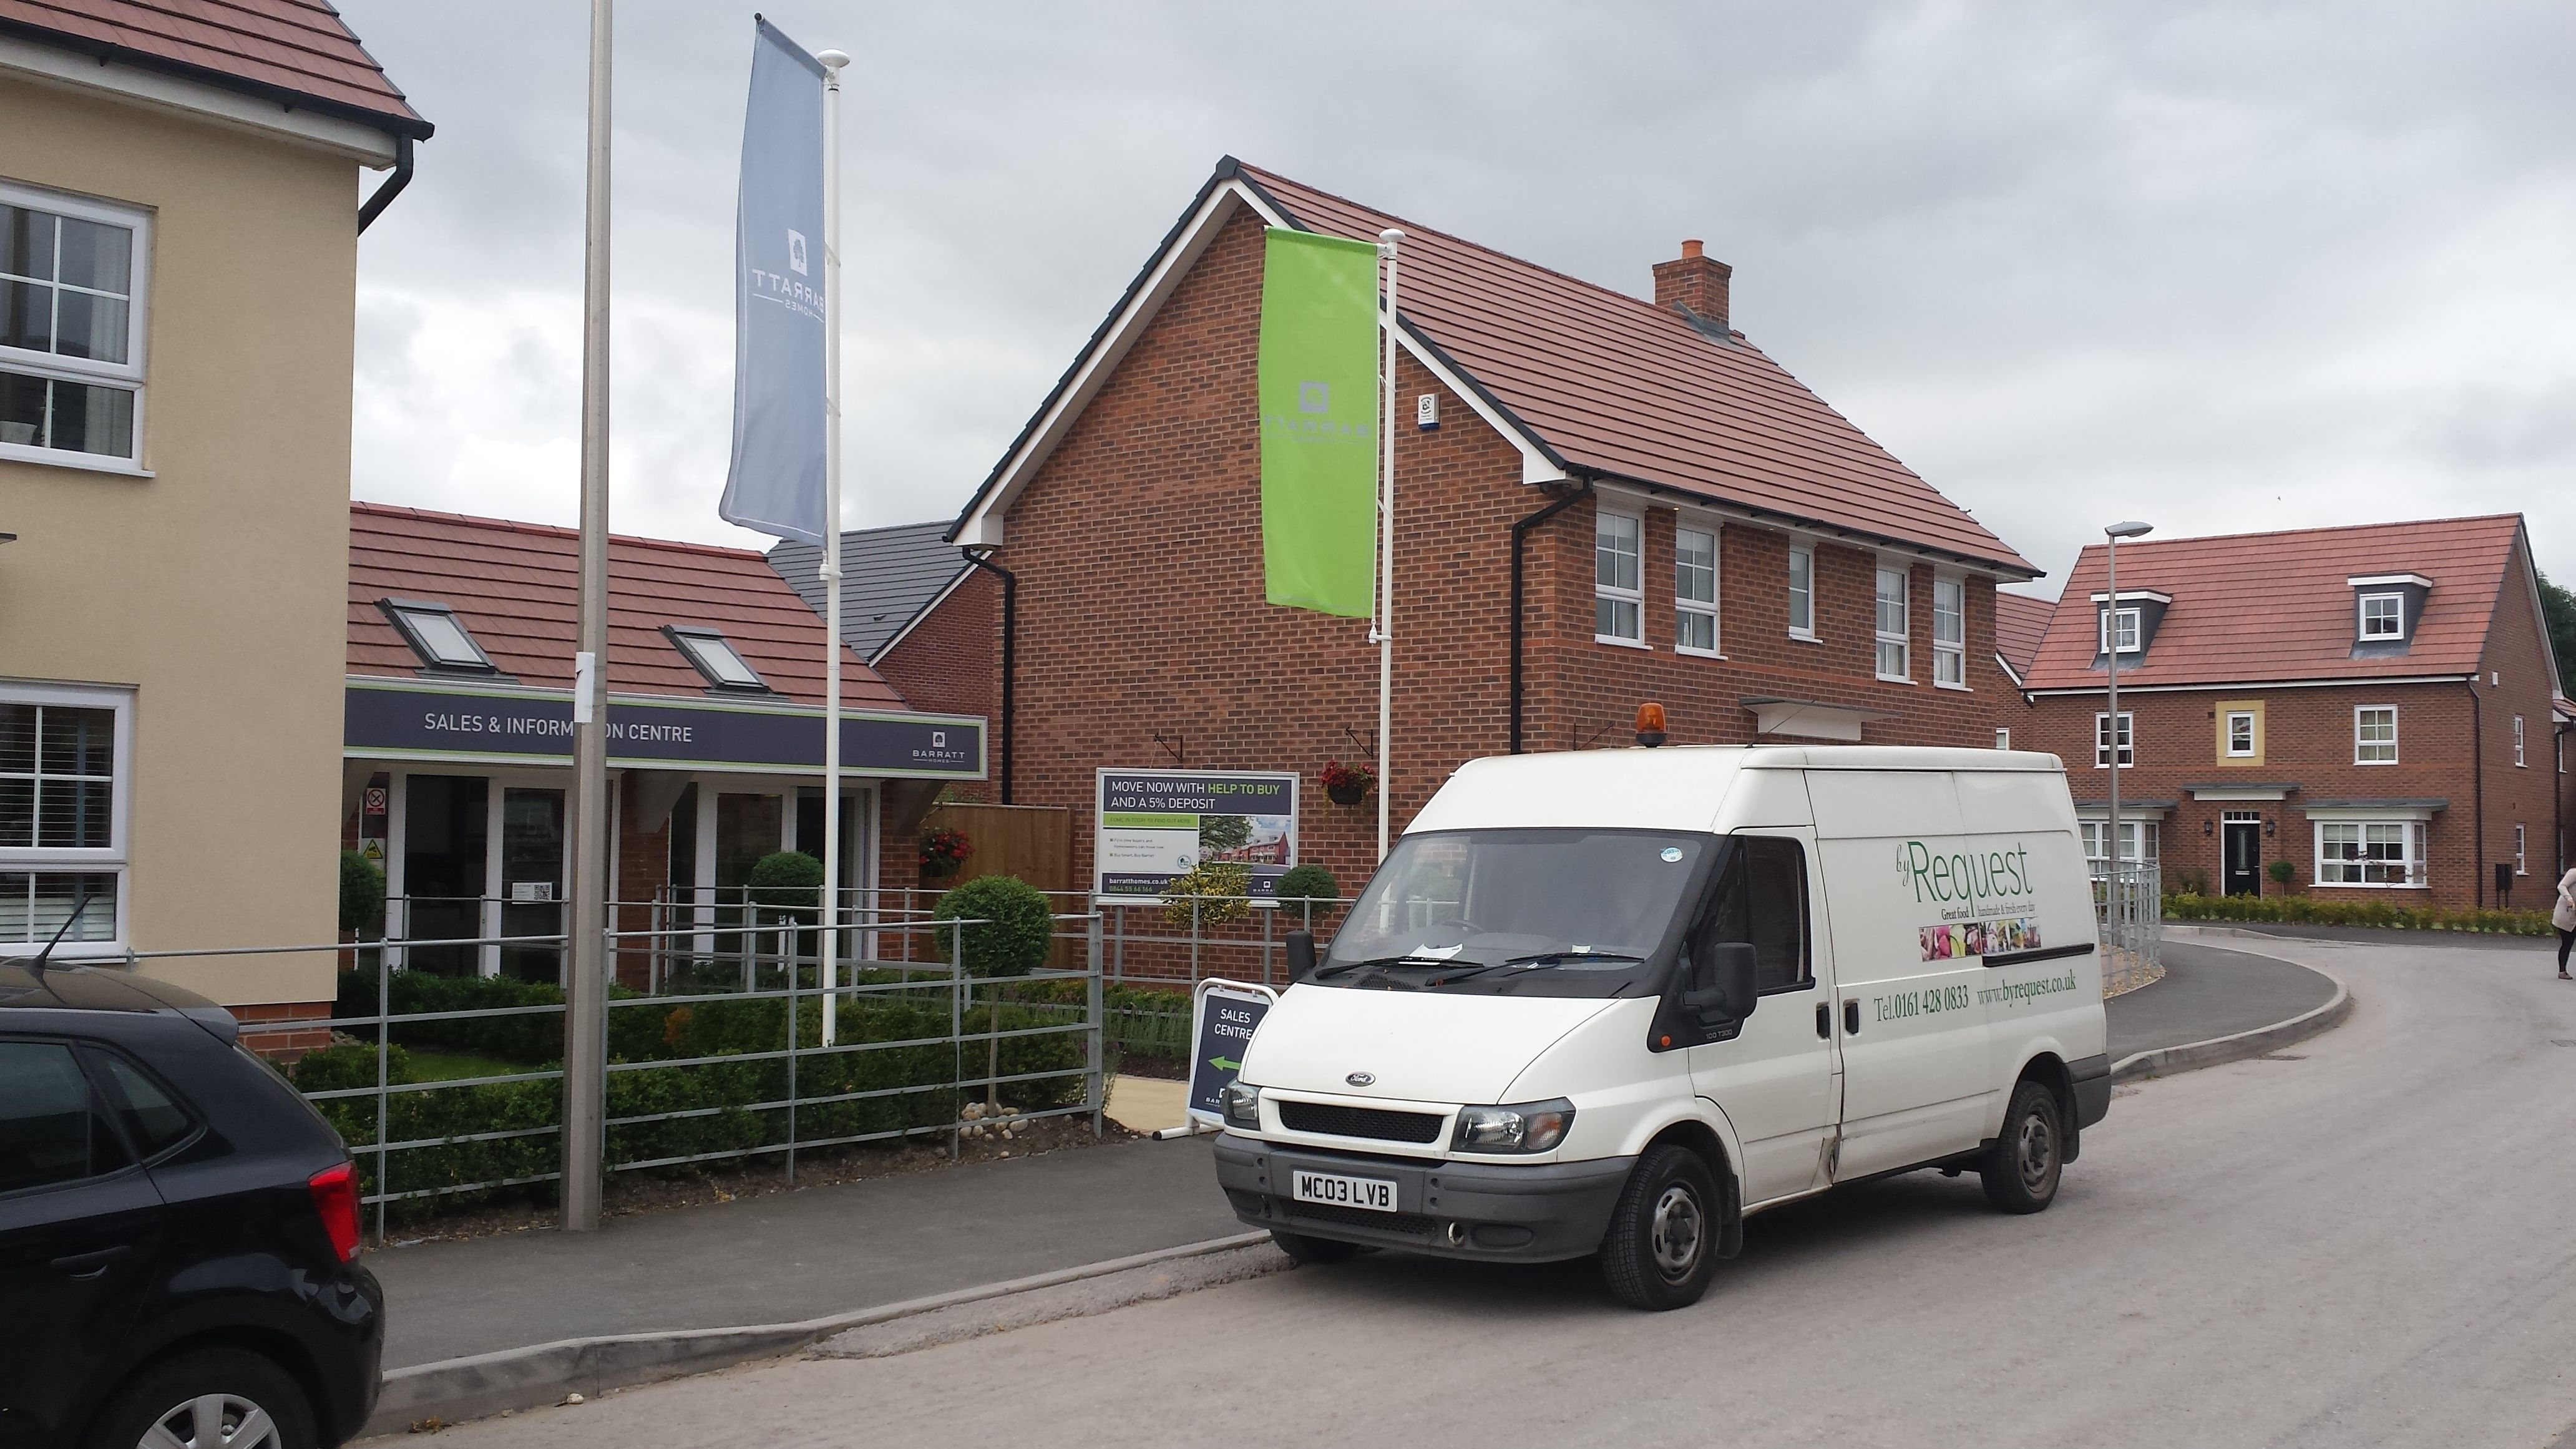 Caterers cheshire new property developments building